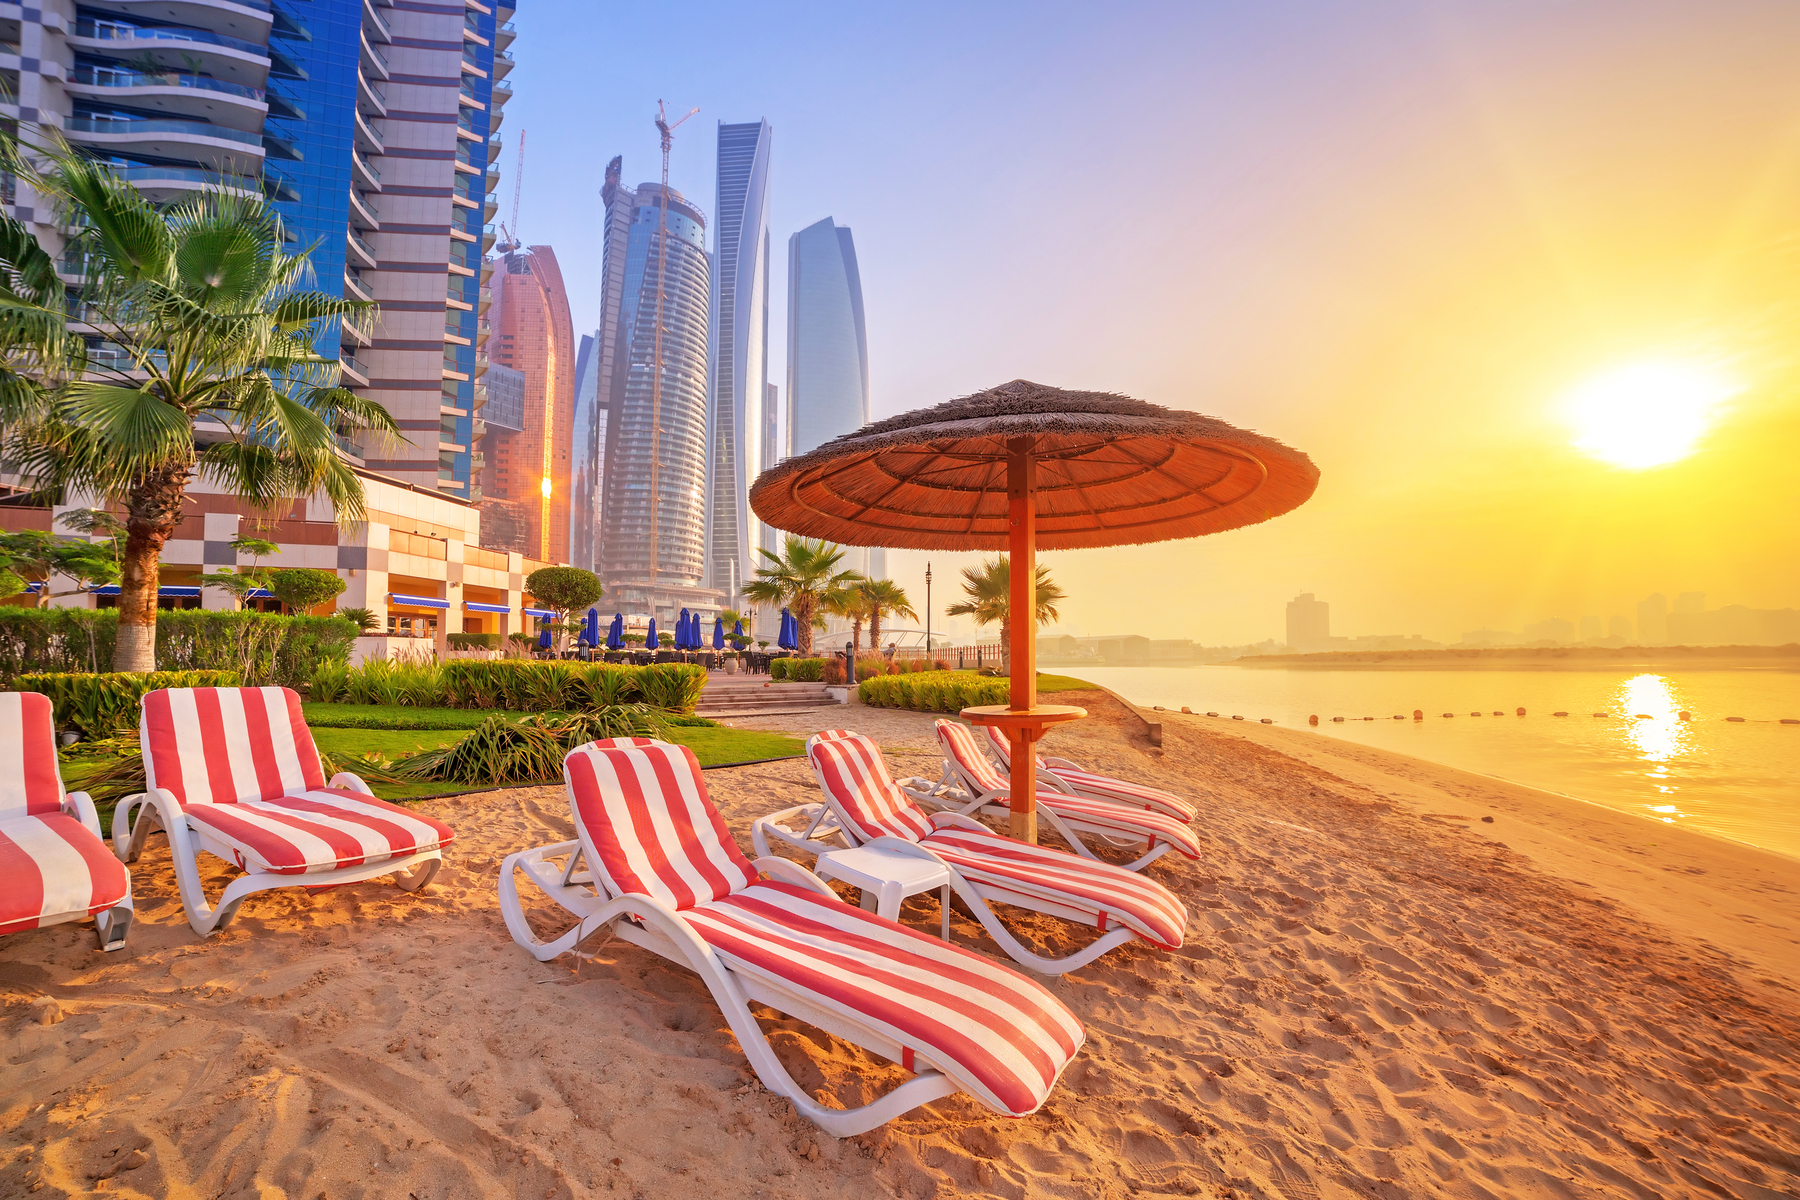 https://www.expatica.com/app/uploads/sites/15/2019/11/Climate-and-seasons-in-the-United-Arab-Emirates.jpg